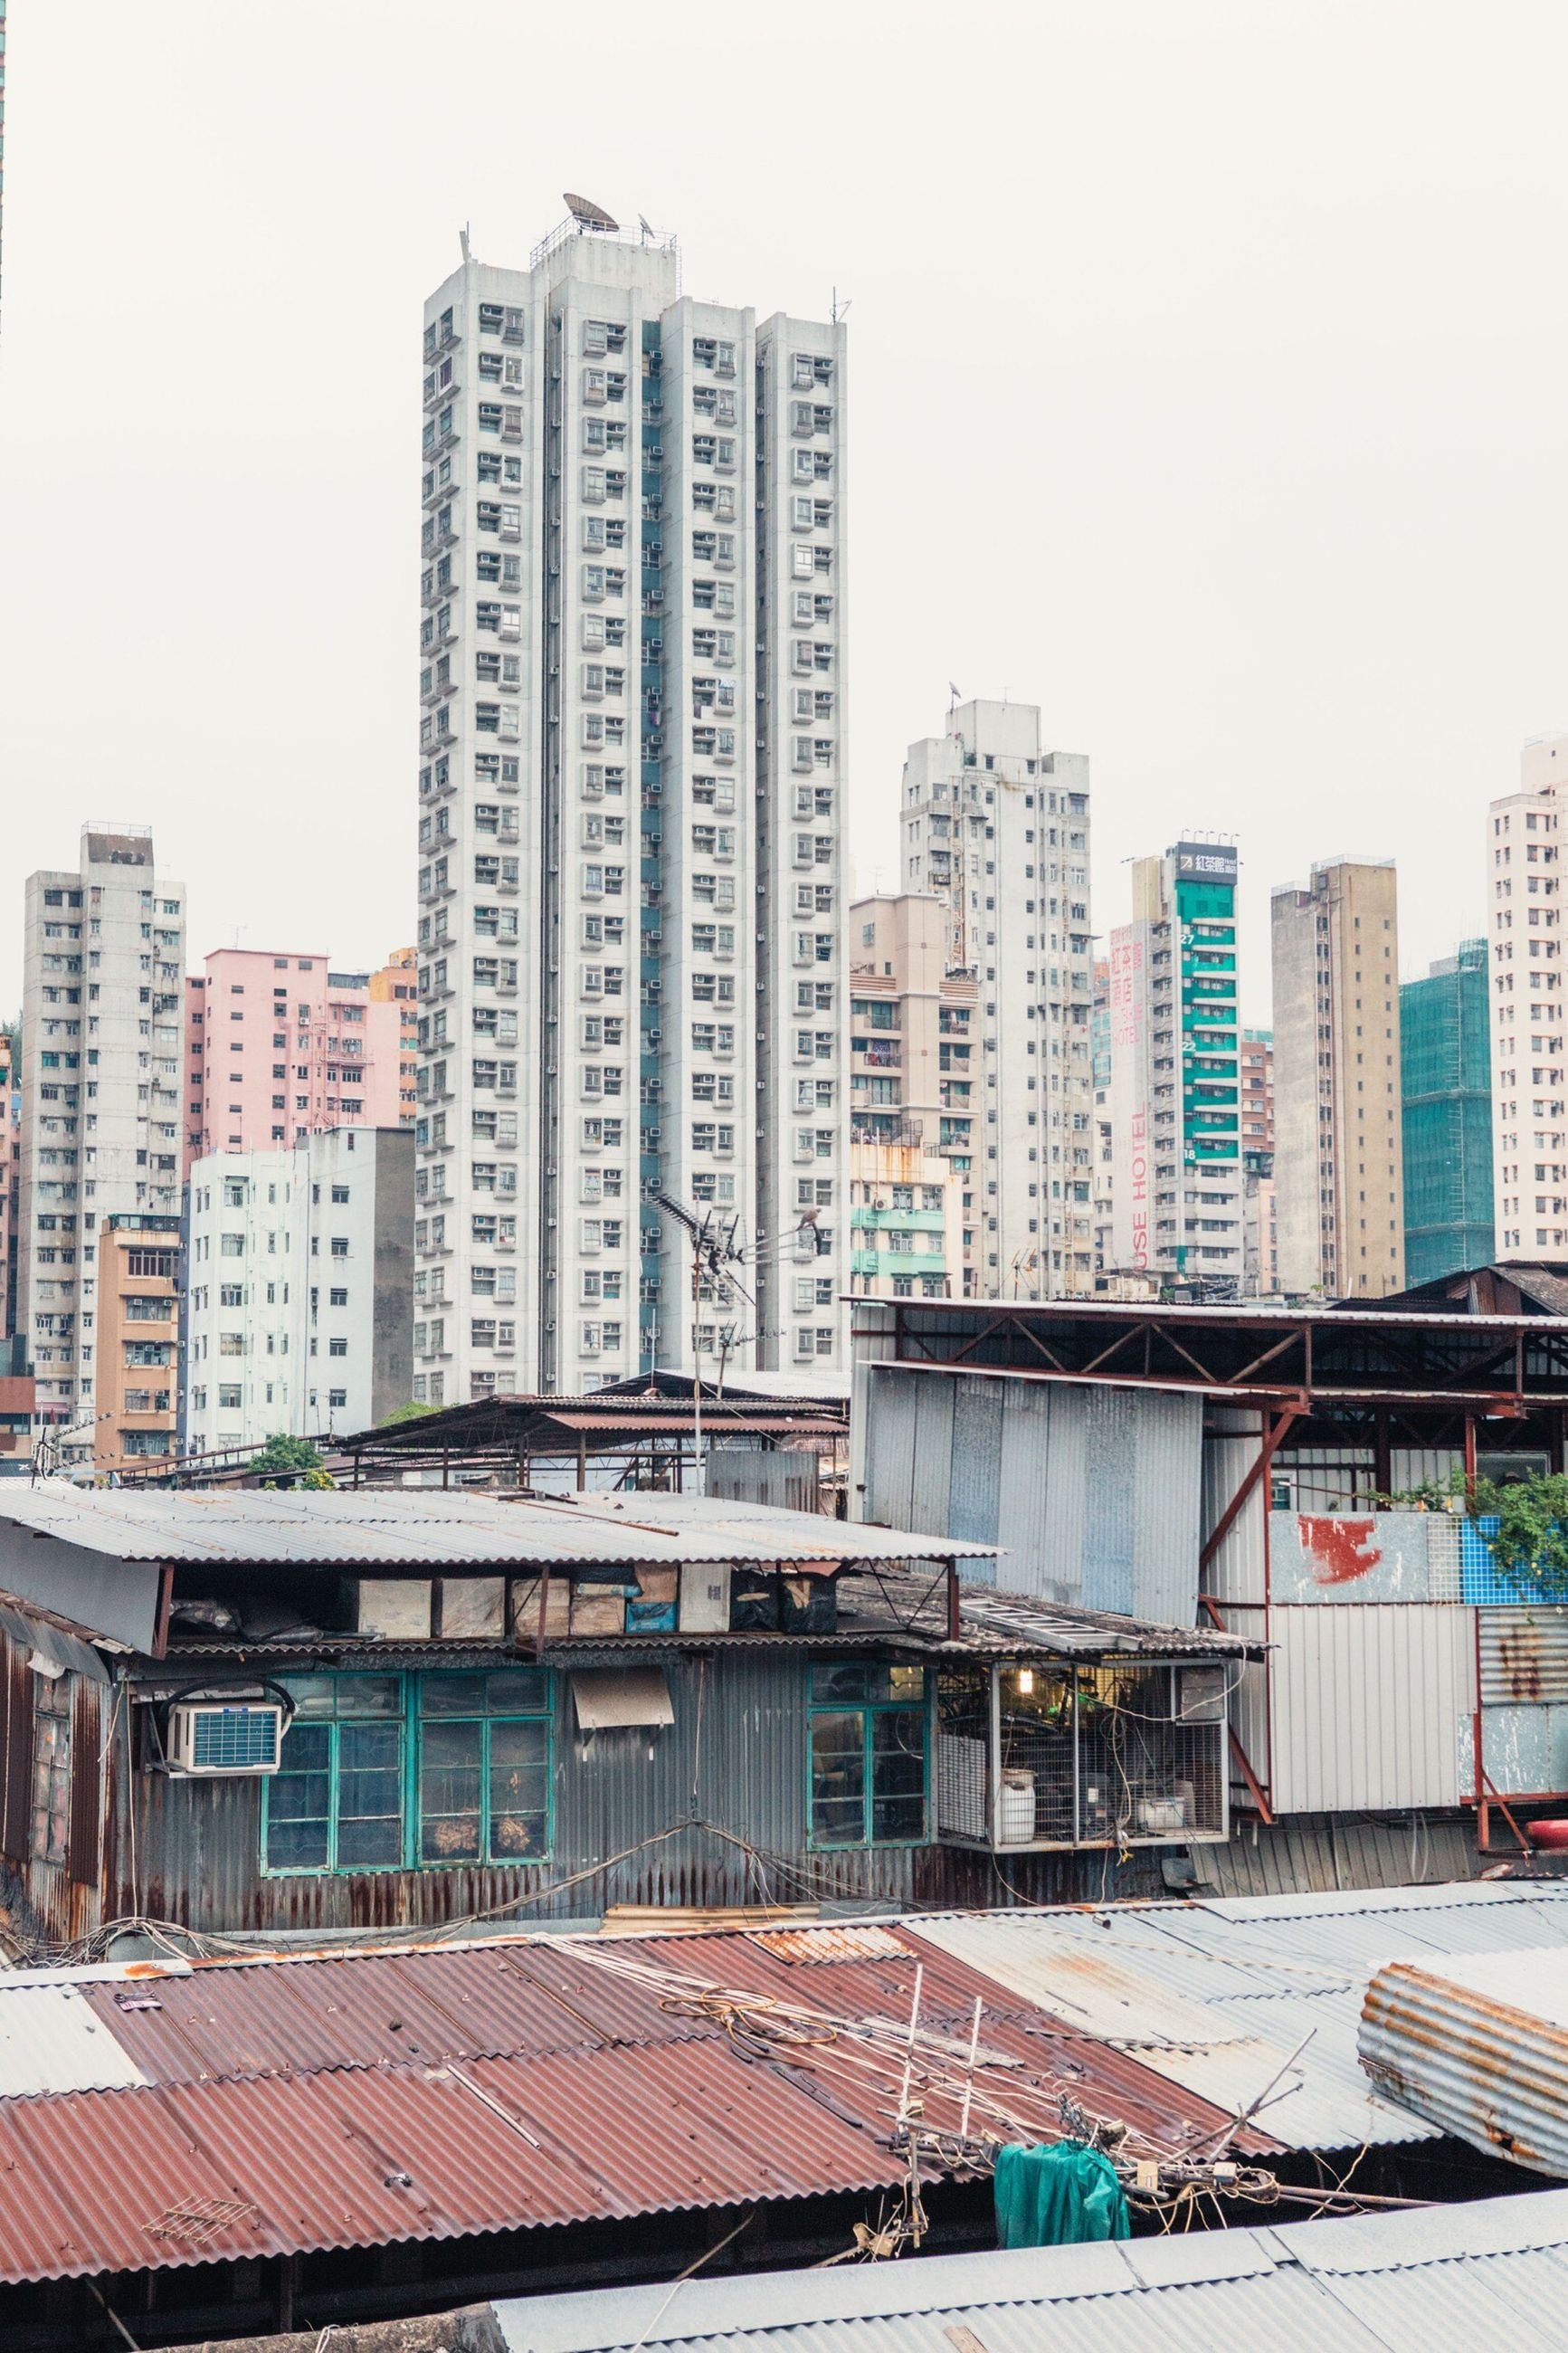 architecture, building exterior, built structure, city, roof, residential structure, residential building, tall - high, residential district, tower, skyscraper, apartment, sky, office building, outdoors, tall, city life, day, development, no people, architectural feature, urban skyline, building story